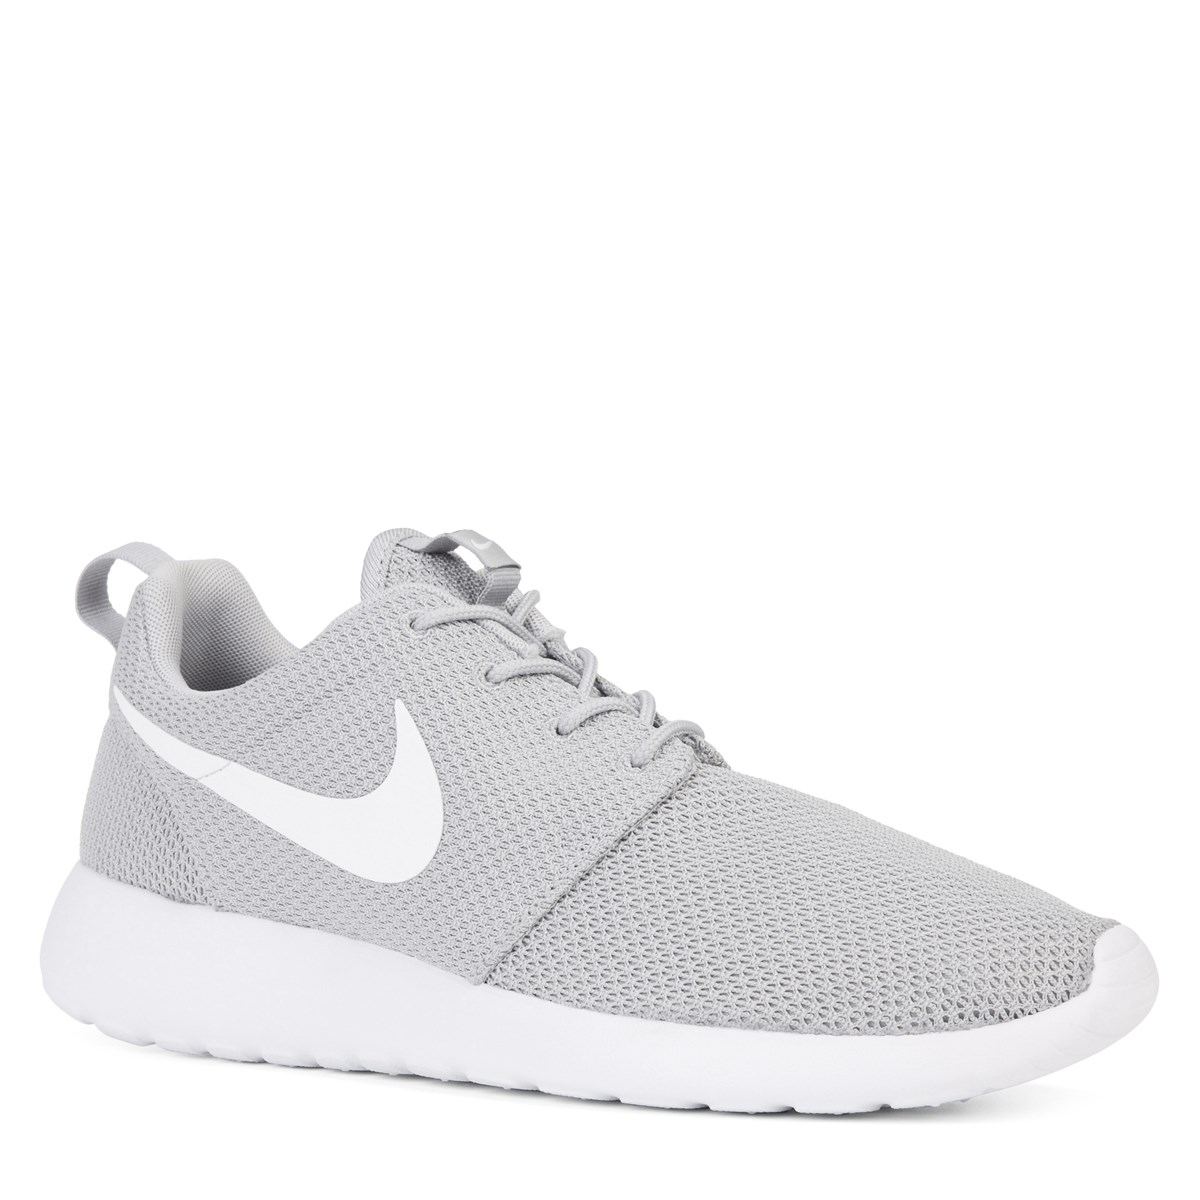 Men's Roshe One Grey Sneaker